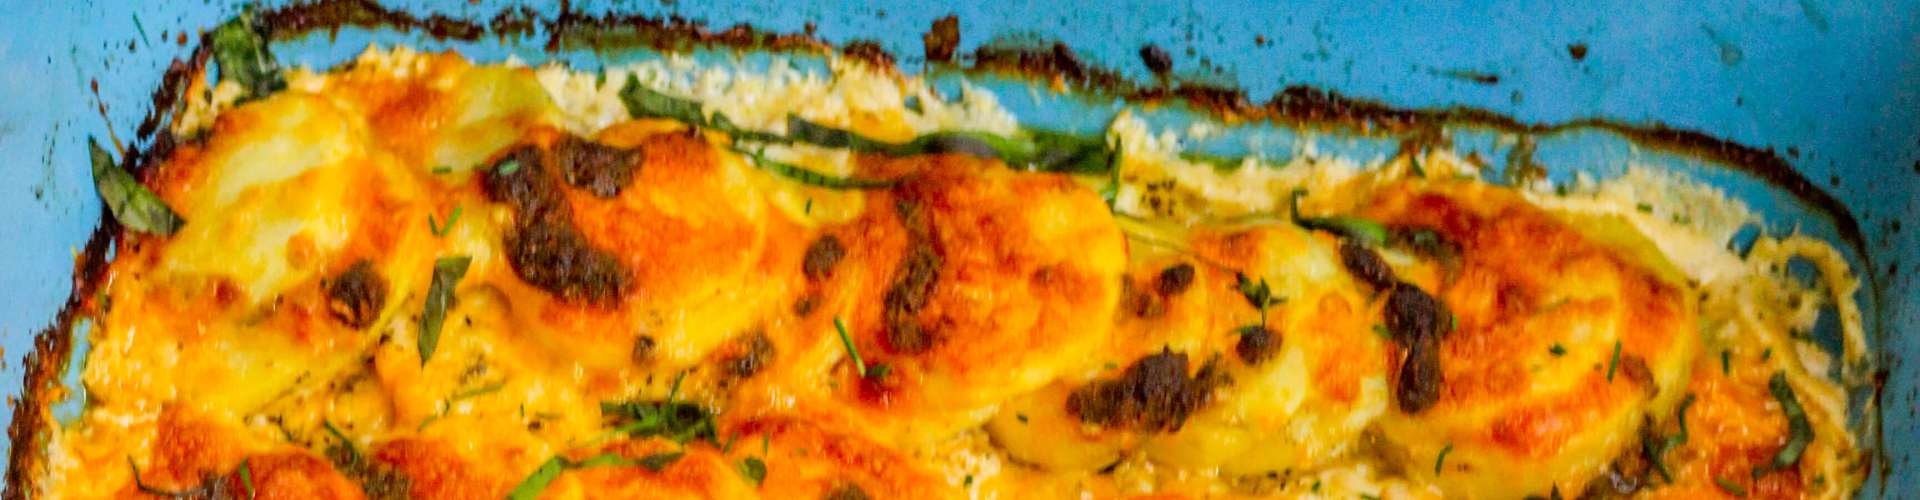 Herbed Potatoes Au Gratin with Pesto